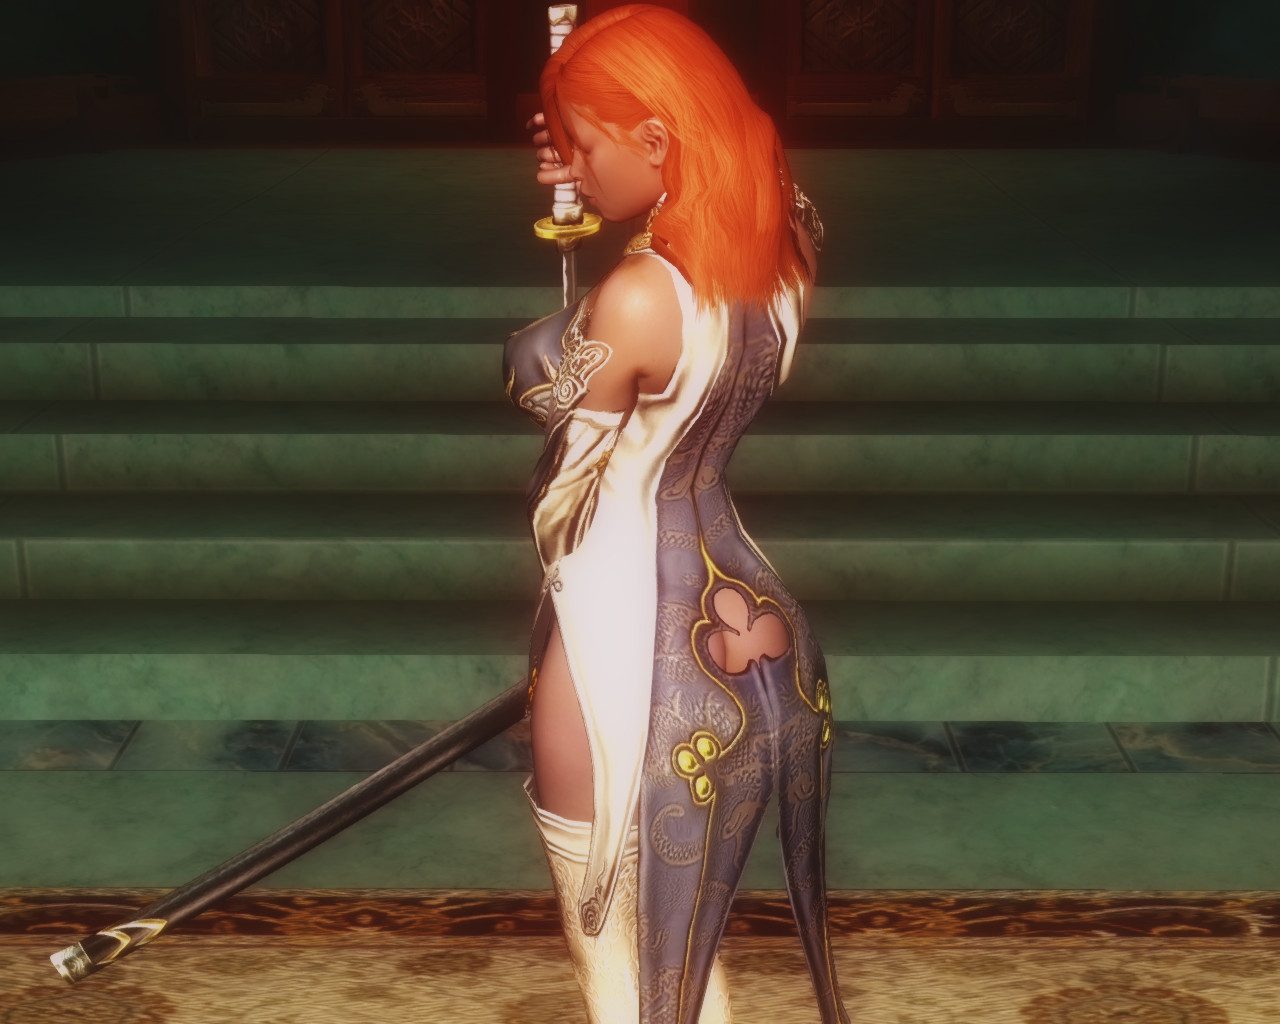 bns-white-bird-outfit-03.jpg